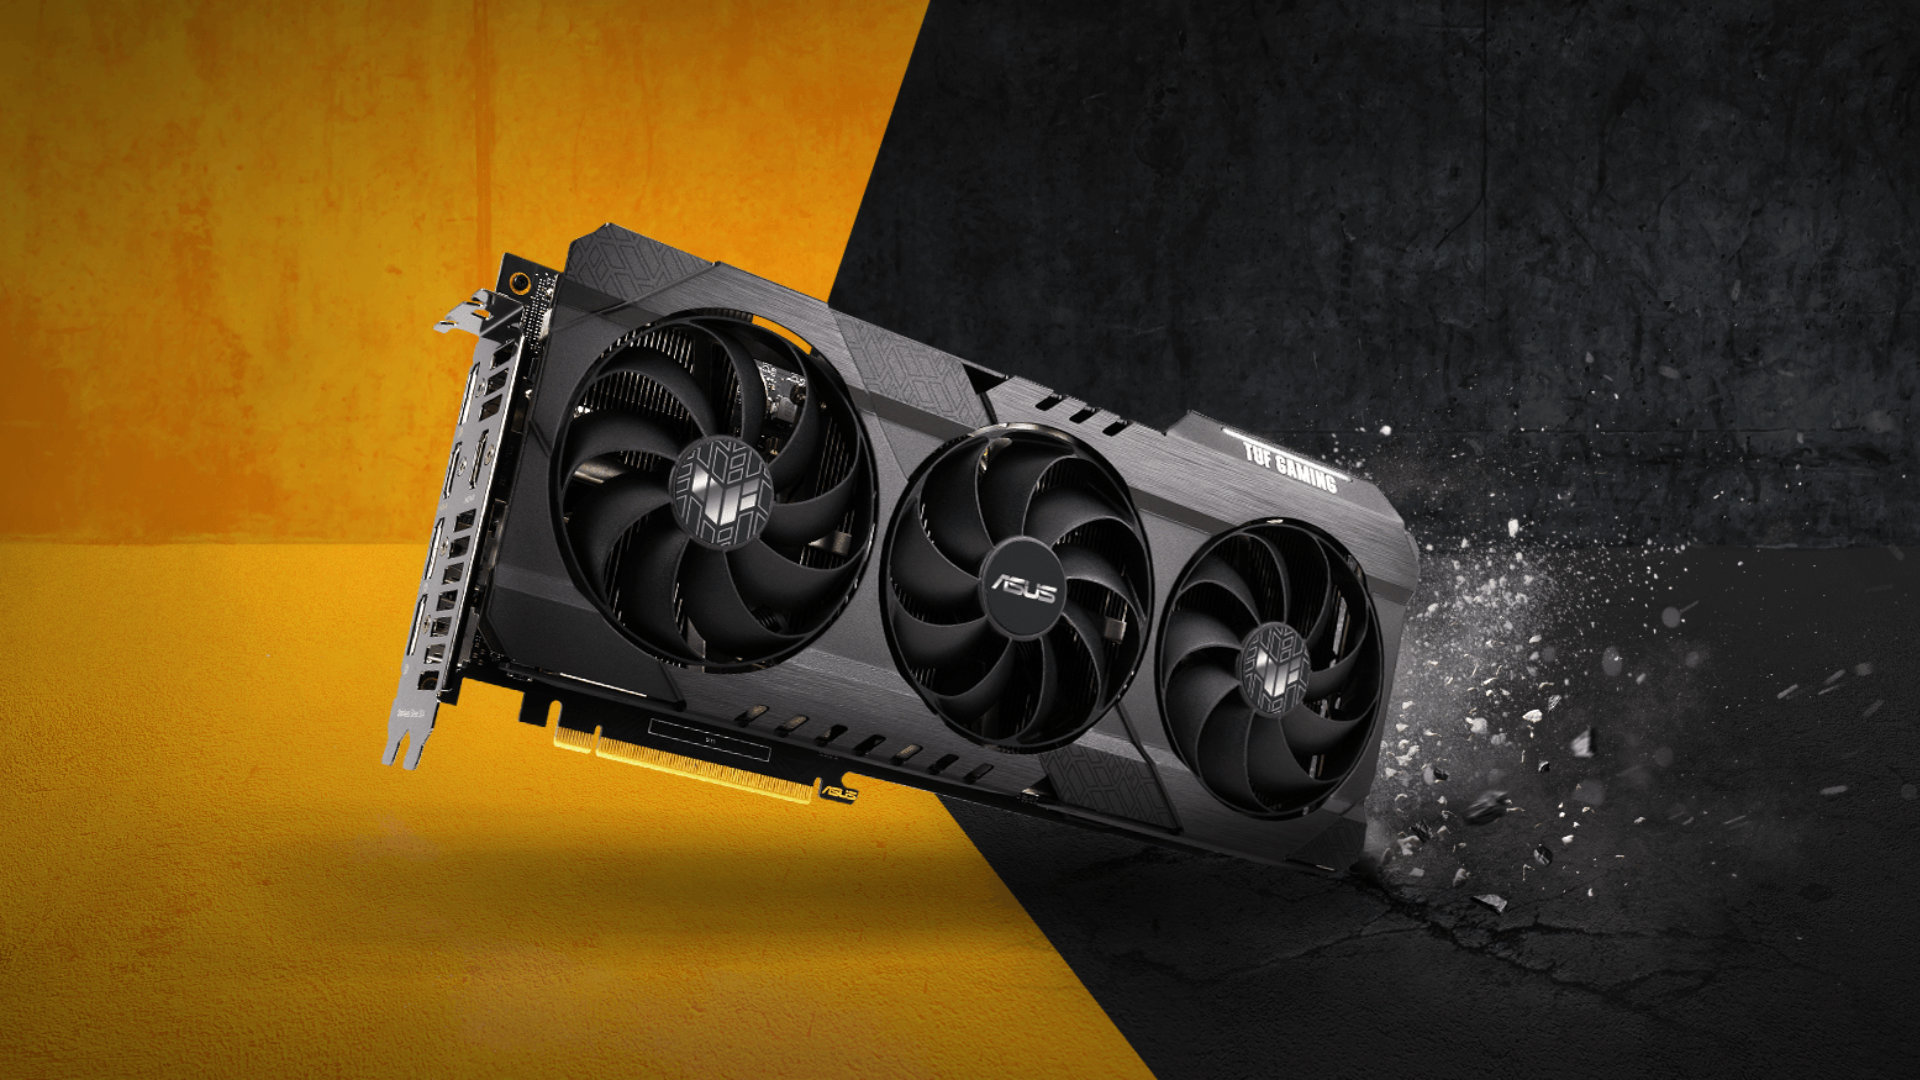 Nvidia RTX 3080 Ti GPUs reportedly sold ahead of release for $3,500